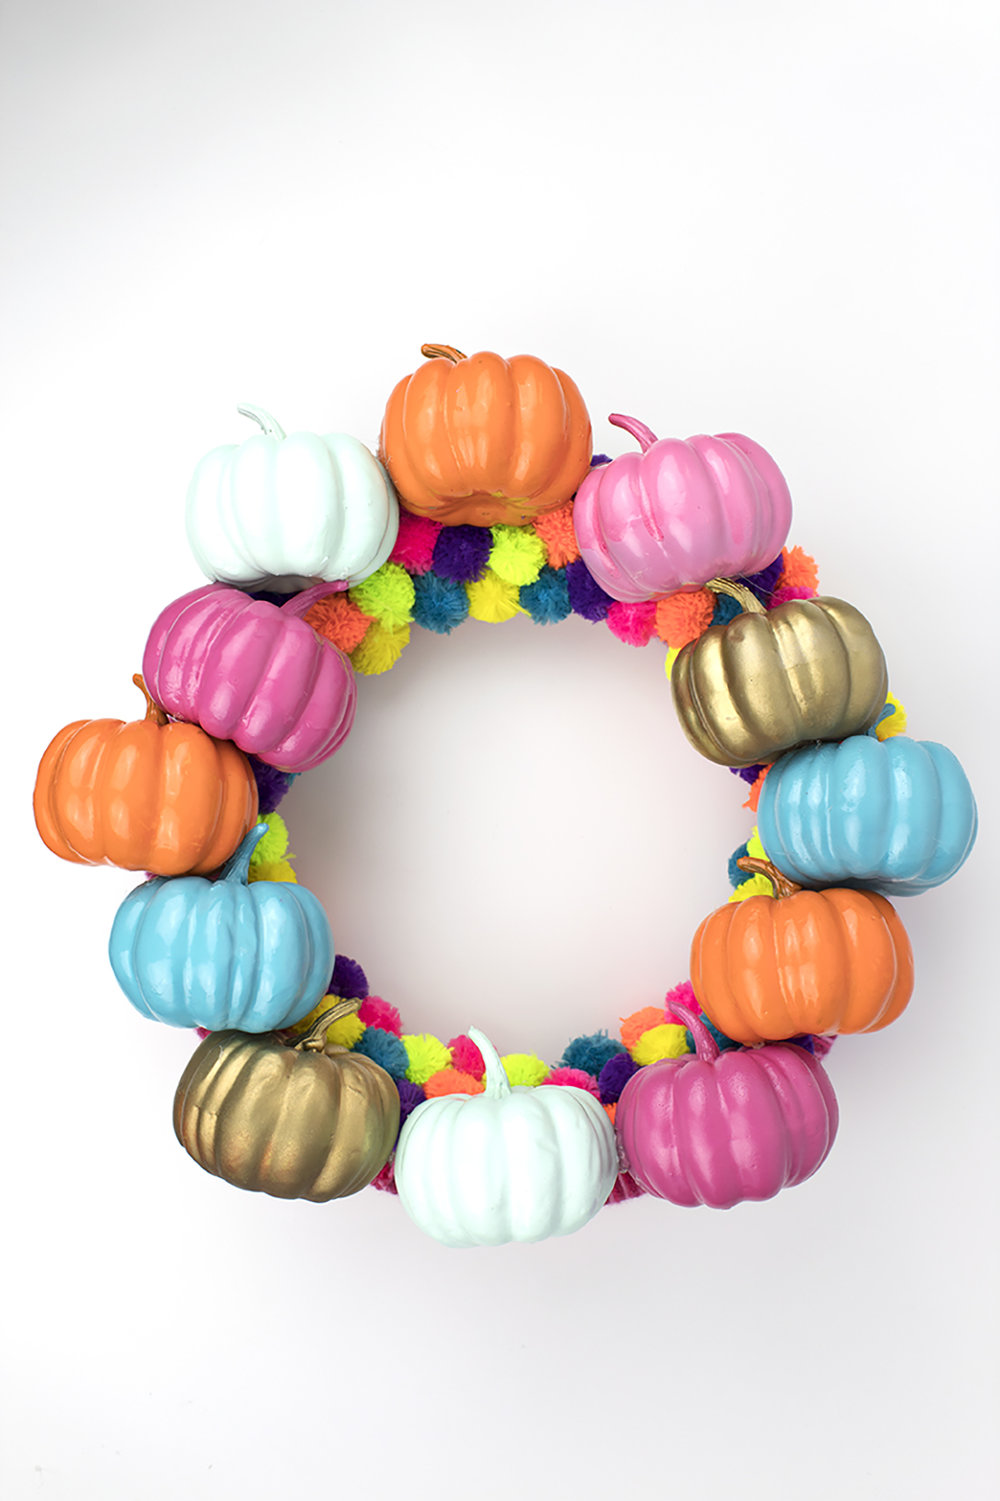 In order to celebrate this weird Summer-Fall hybrid, I crafted a colorful pumpkin wreath to bridge the gap between the seasons. It's got a few of my favorite things- bright colors, pumpkins, and POM POMS!! It's a little kooky, but all the best people are ;) #pompomcrafts #fallcrafts #pumpkins